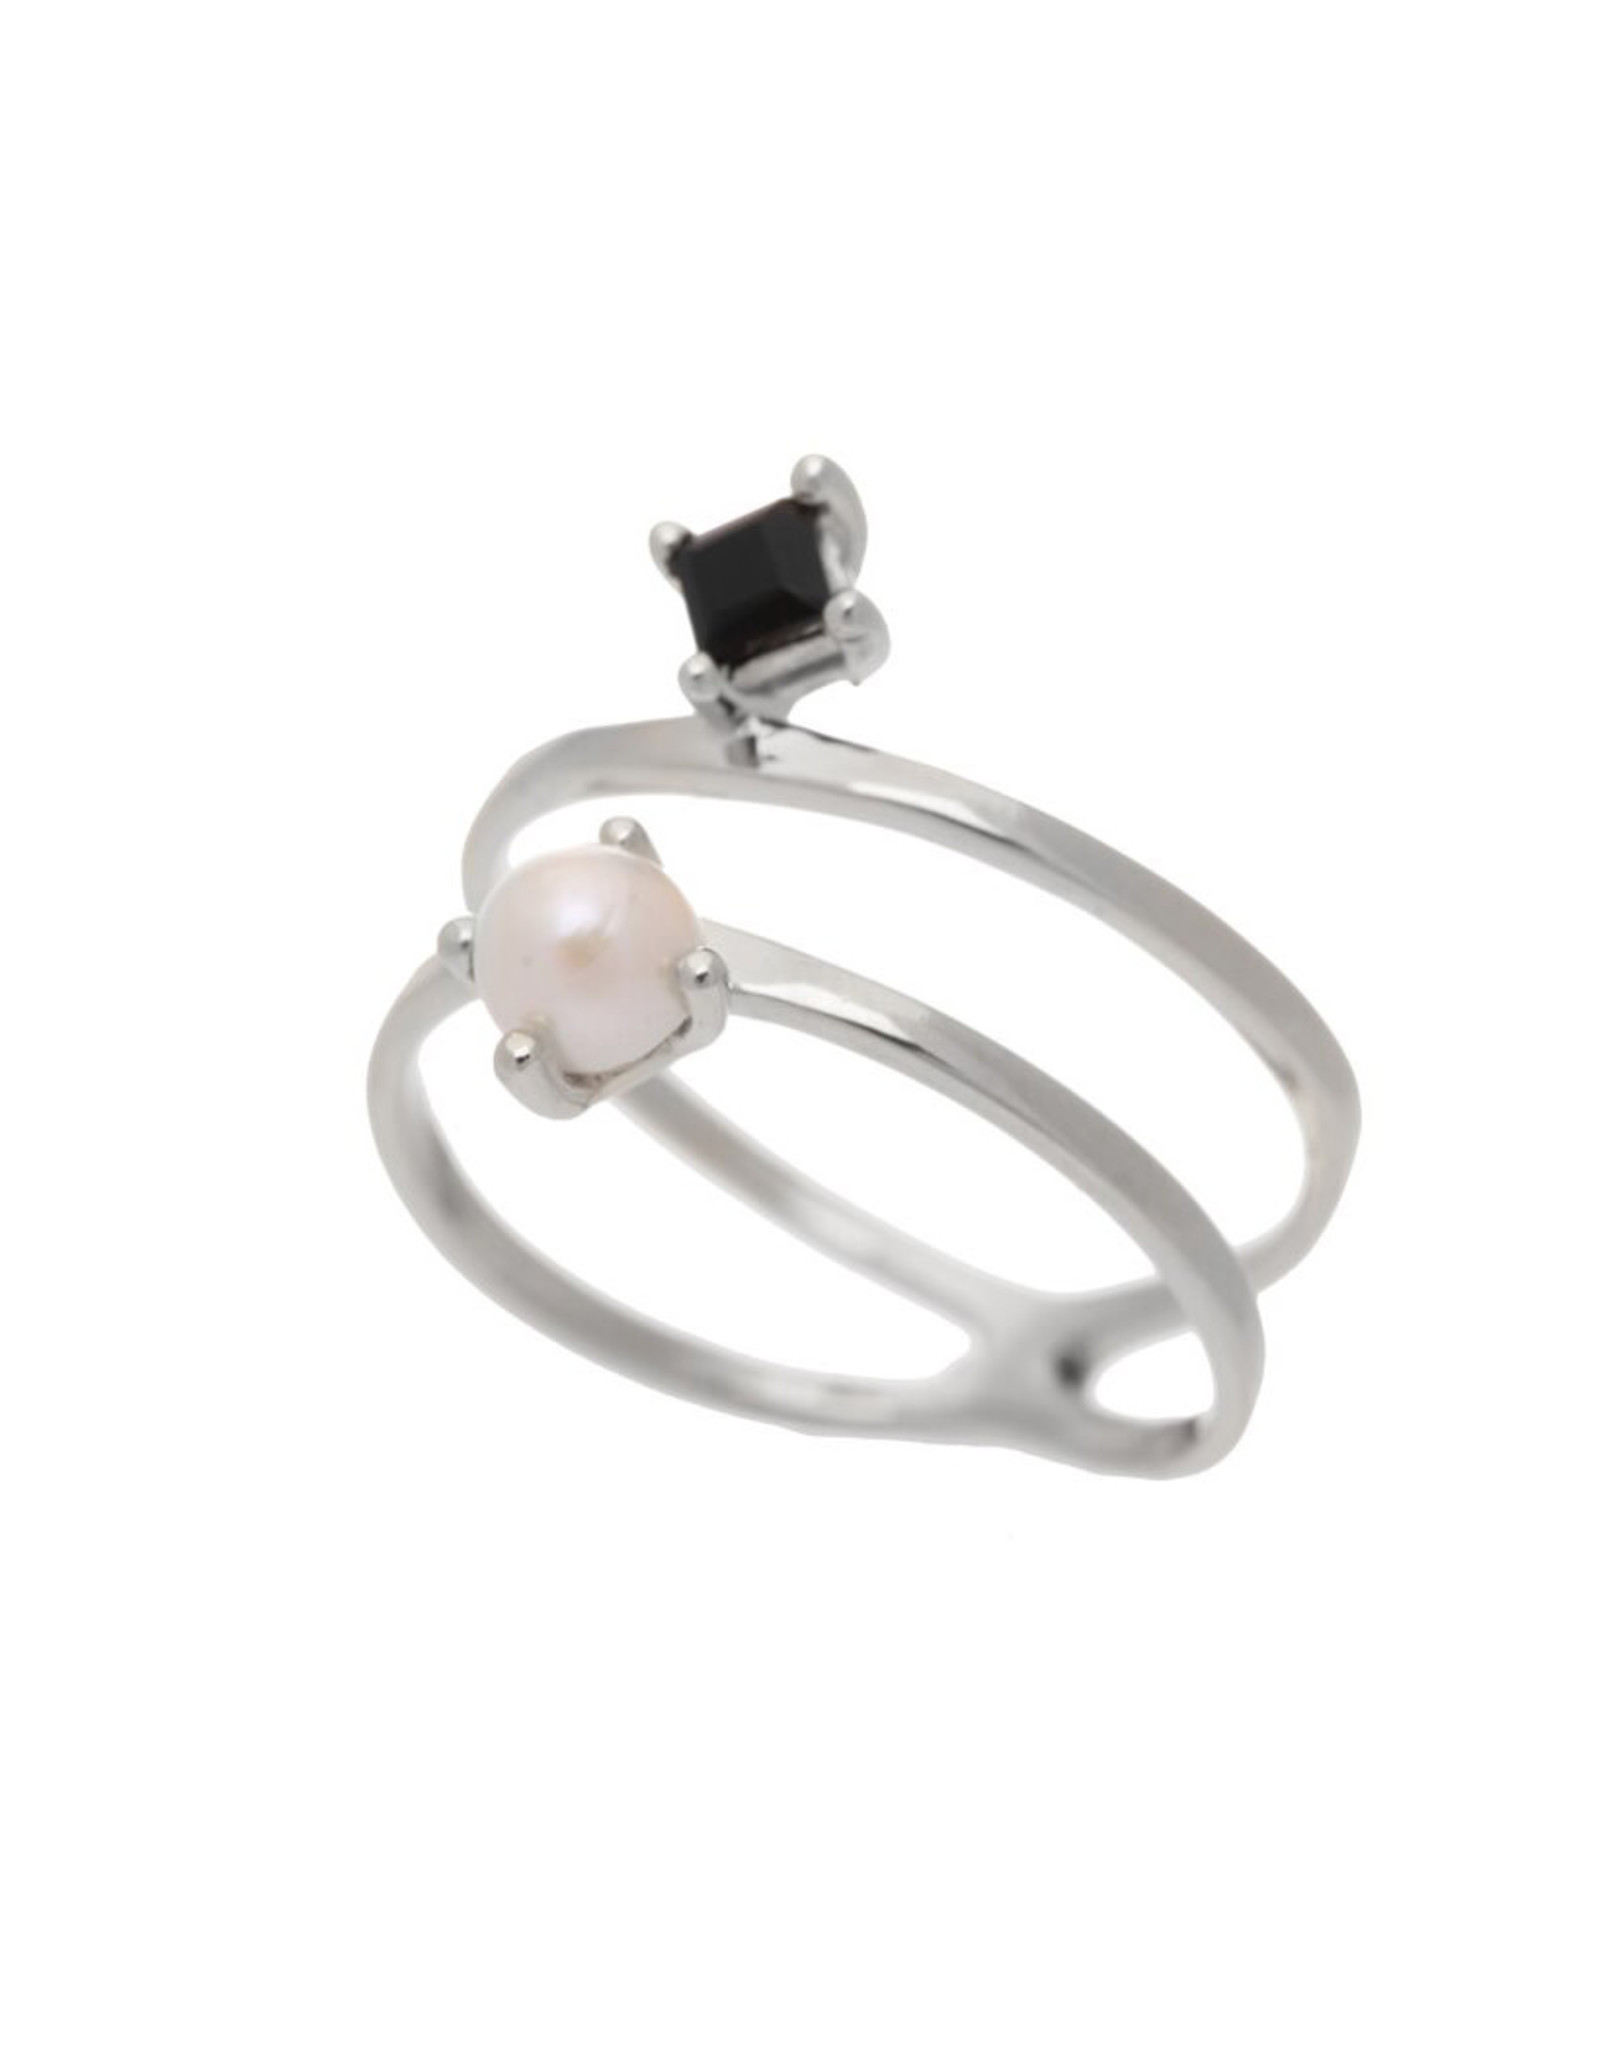 Sarah Mulder Jewelry Silver Cassie Ring - Onyx + Pearl - 7